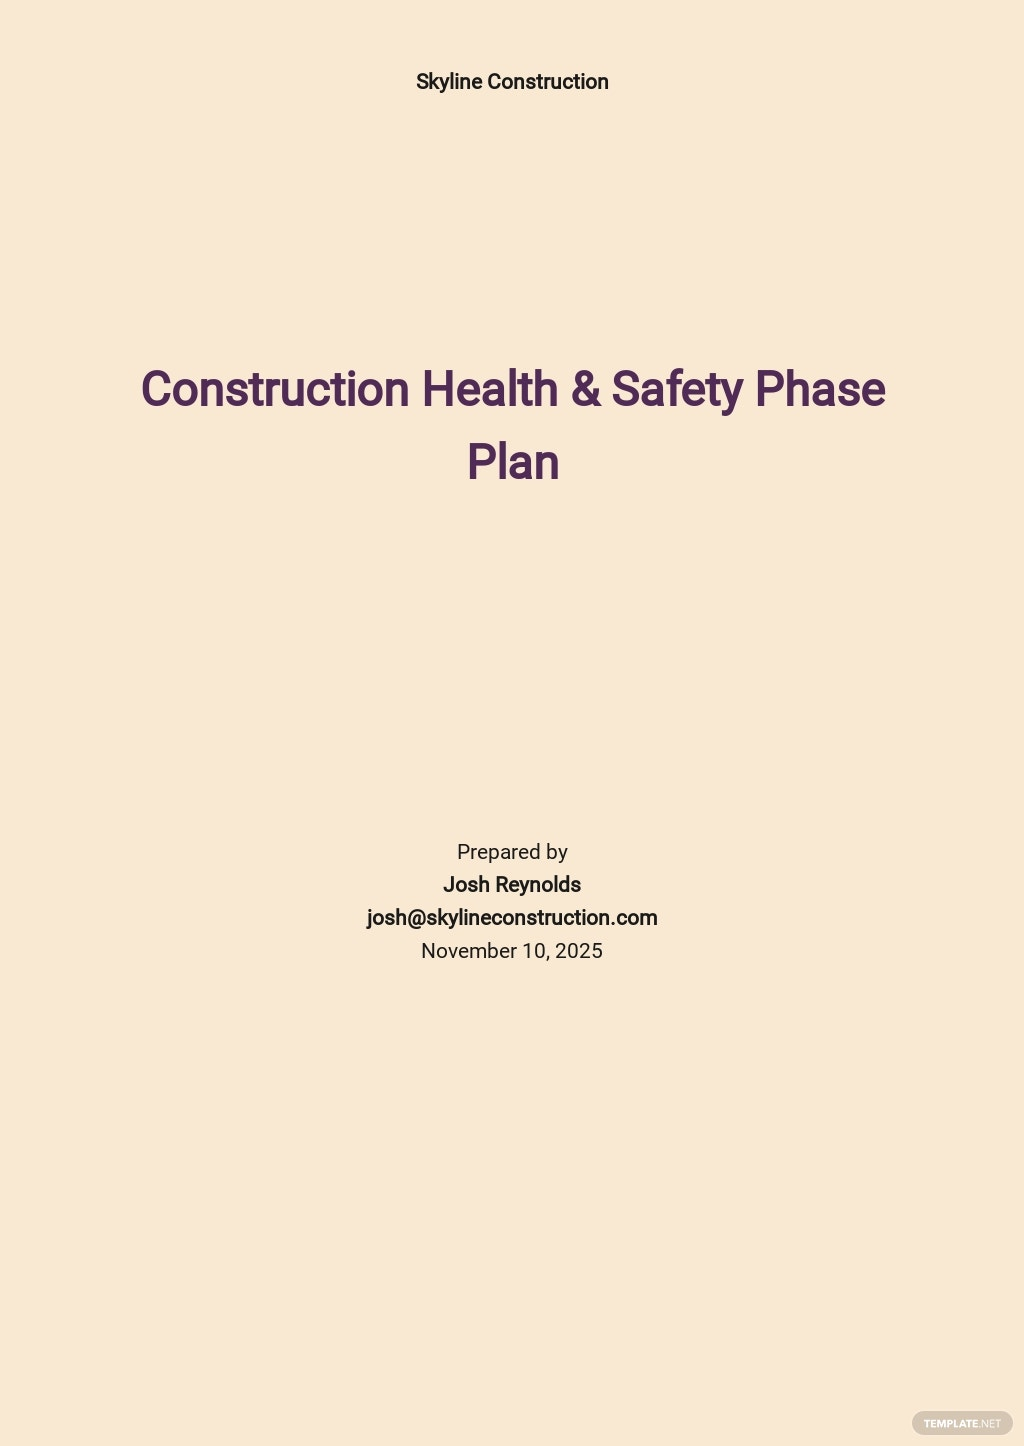 Construction Health & Safety Phase Plan Template